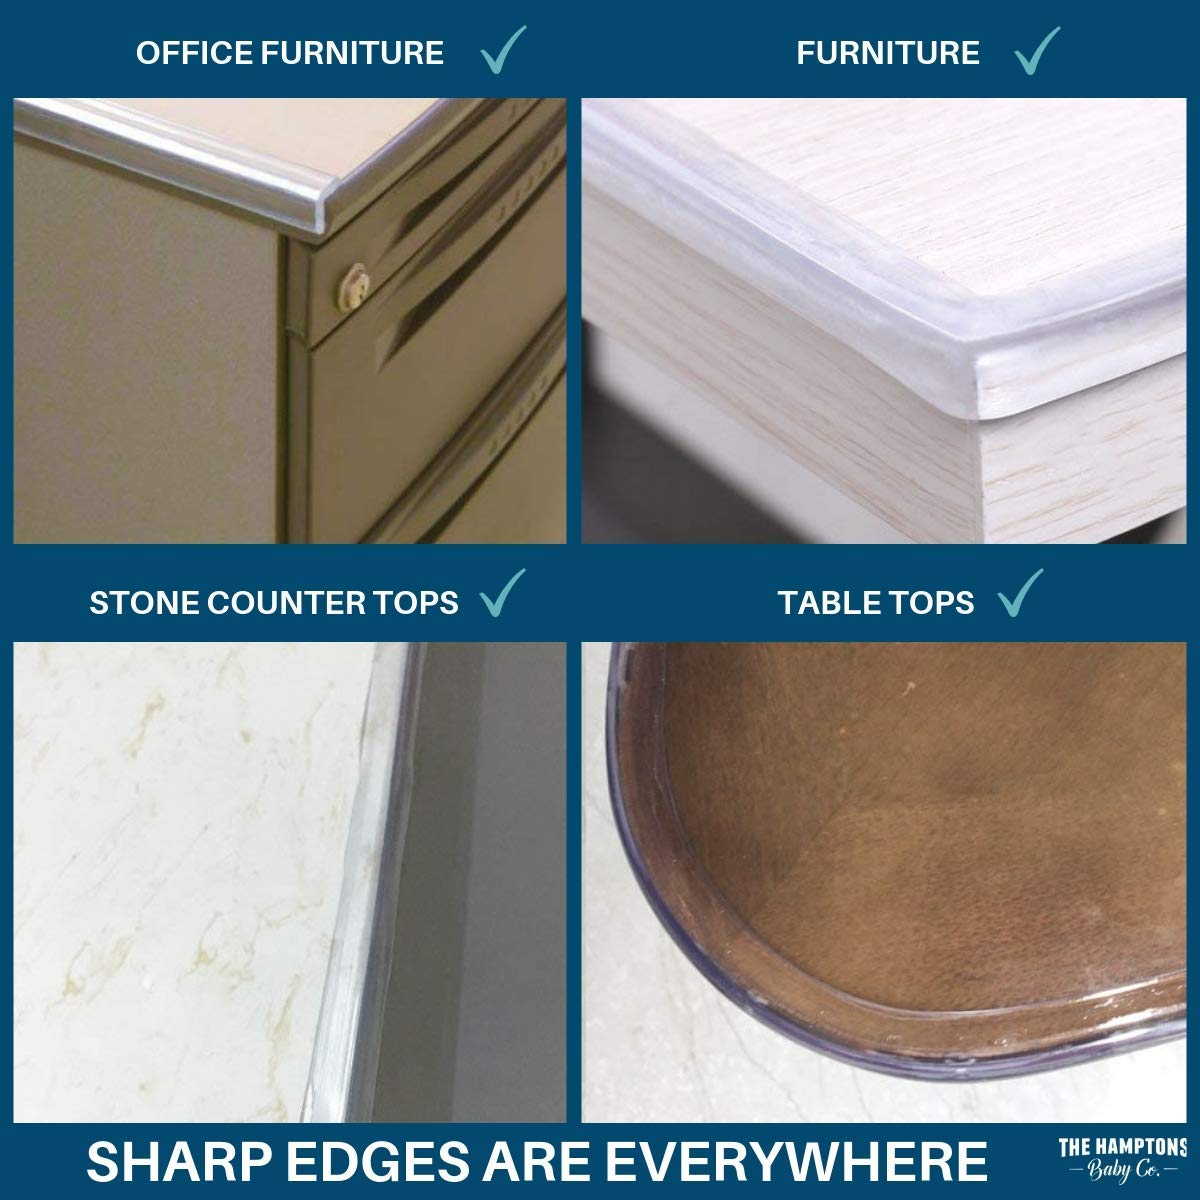 Clear Edge Protectors by The Hamptons Baby - 9-1ft Pieces with Premium Gel Adhesive - Guard Against Injuries on Sharp Edges in Your House, Use on Coffee & Dining Tables, Dressers, Desks and Much More by The Hamptons Baby (Image #8)